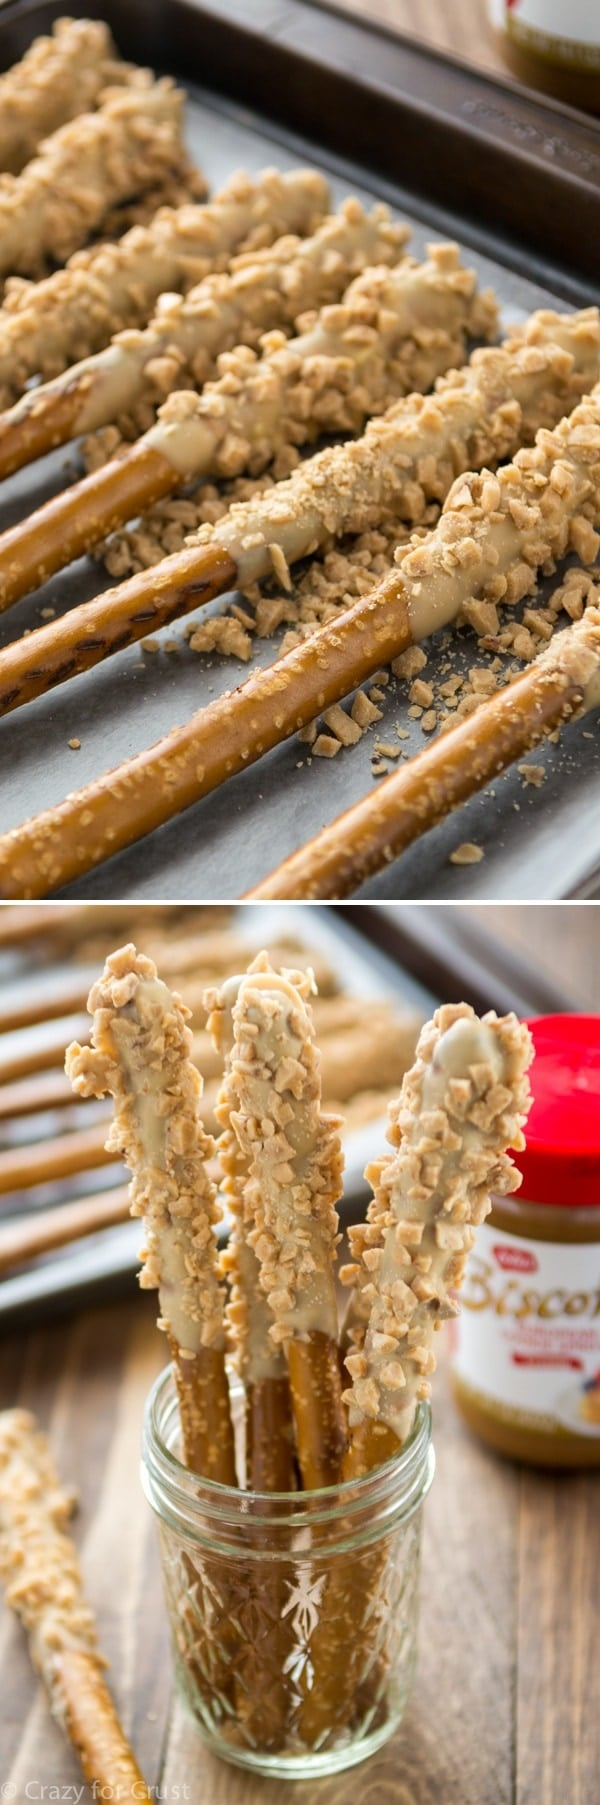 Biscoff Toffee Dipped Pretzel Rods - 10 minutes between you and the best snack ever. Plus they make a great gift!